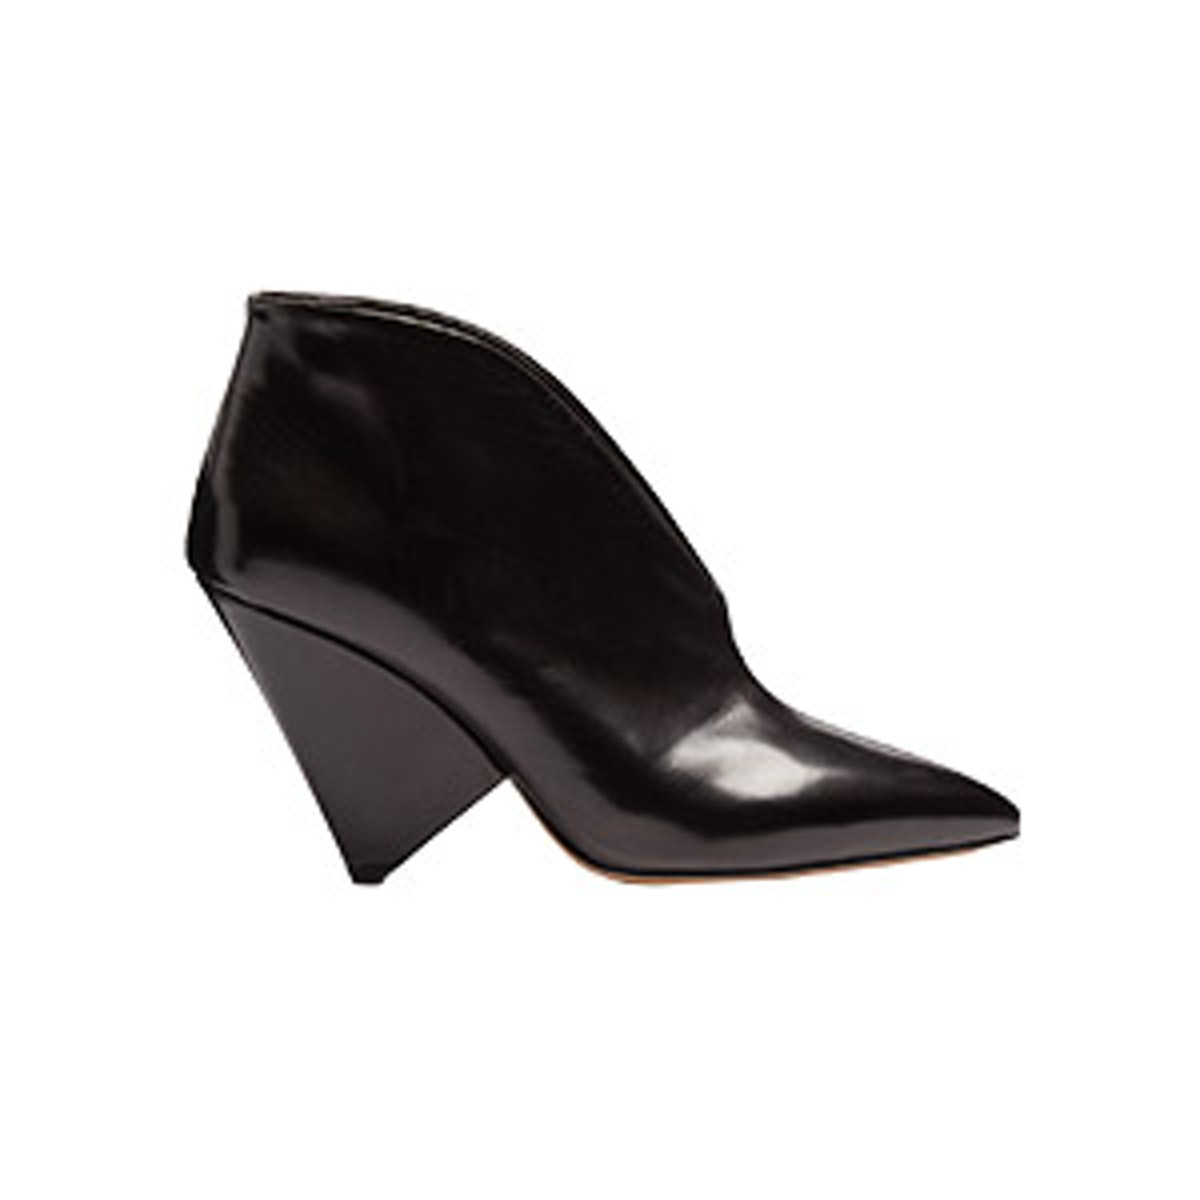 Adenn Leather Ankle Boots